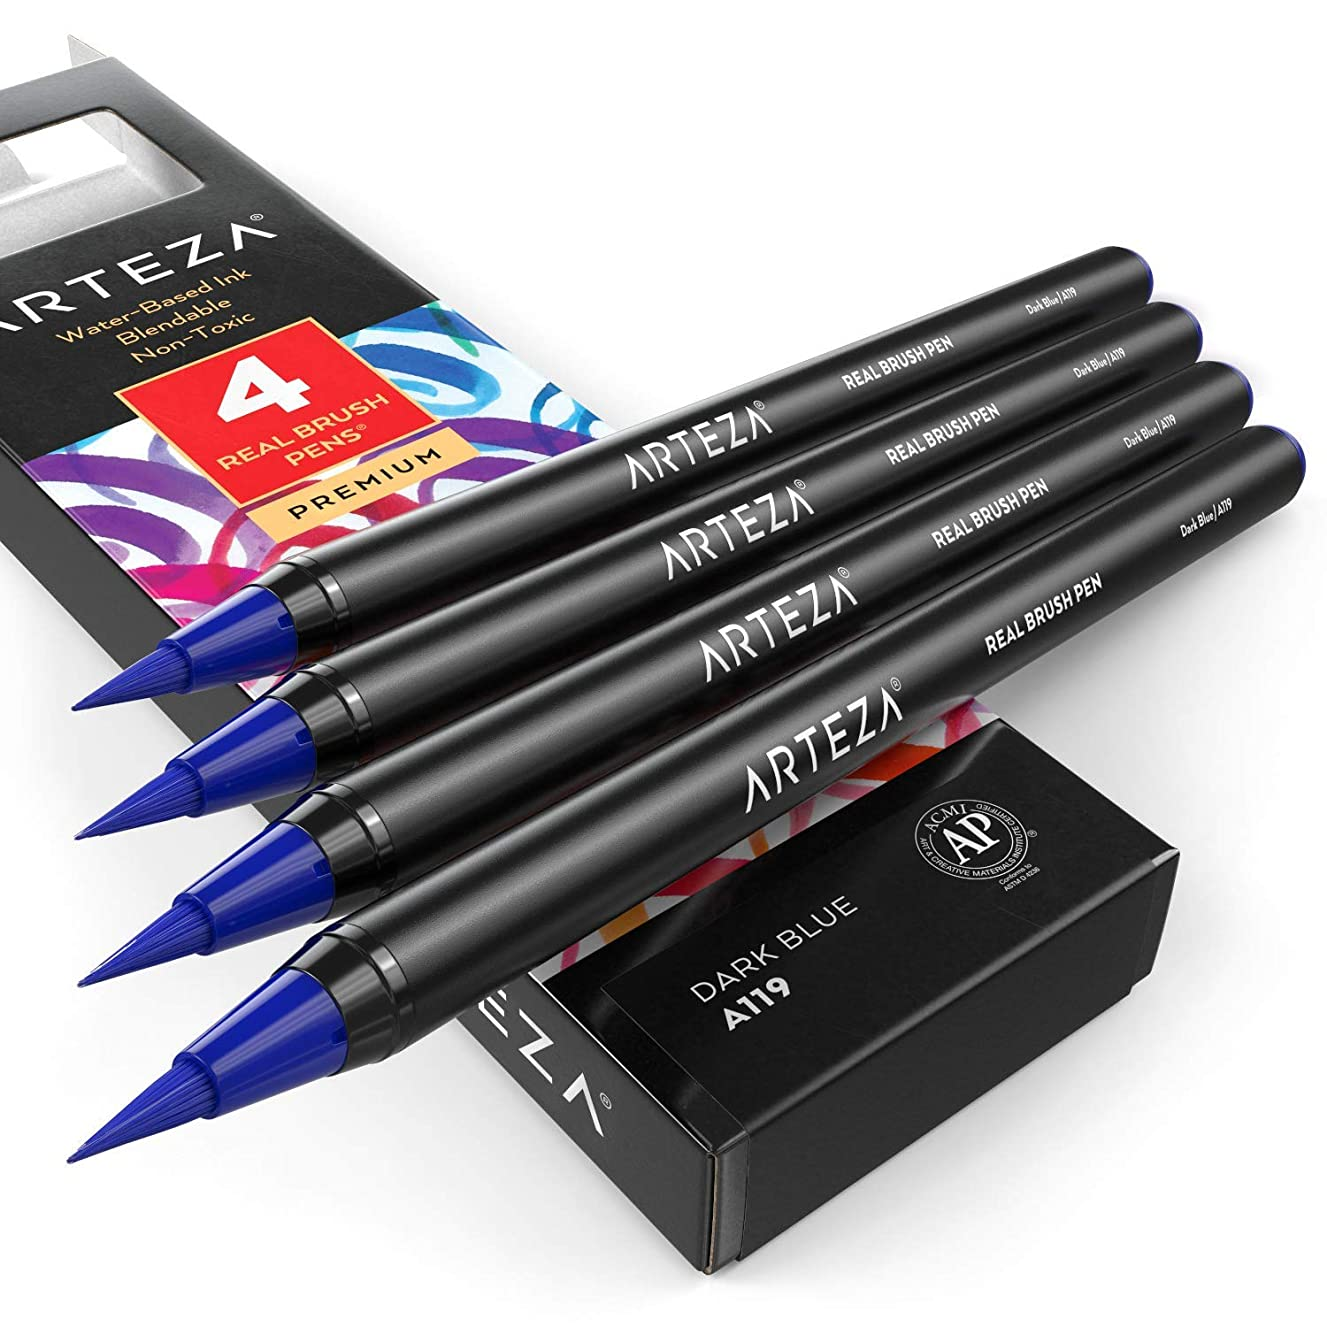 ARTEZA Real Brush Pens (A119 Dark Blue) Pack of 4, for Watercolor Painting with Flexible Nylon Brush Tips, Paint Markers for Coloring, Calligraphy and Drawing